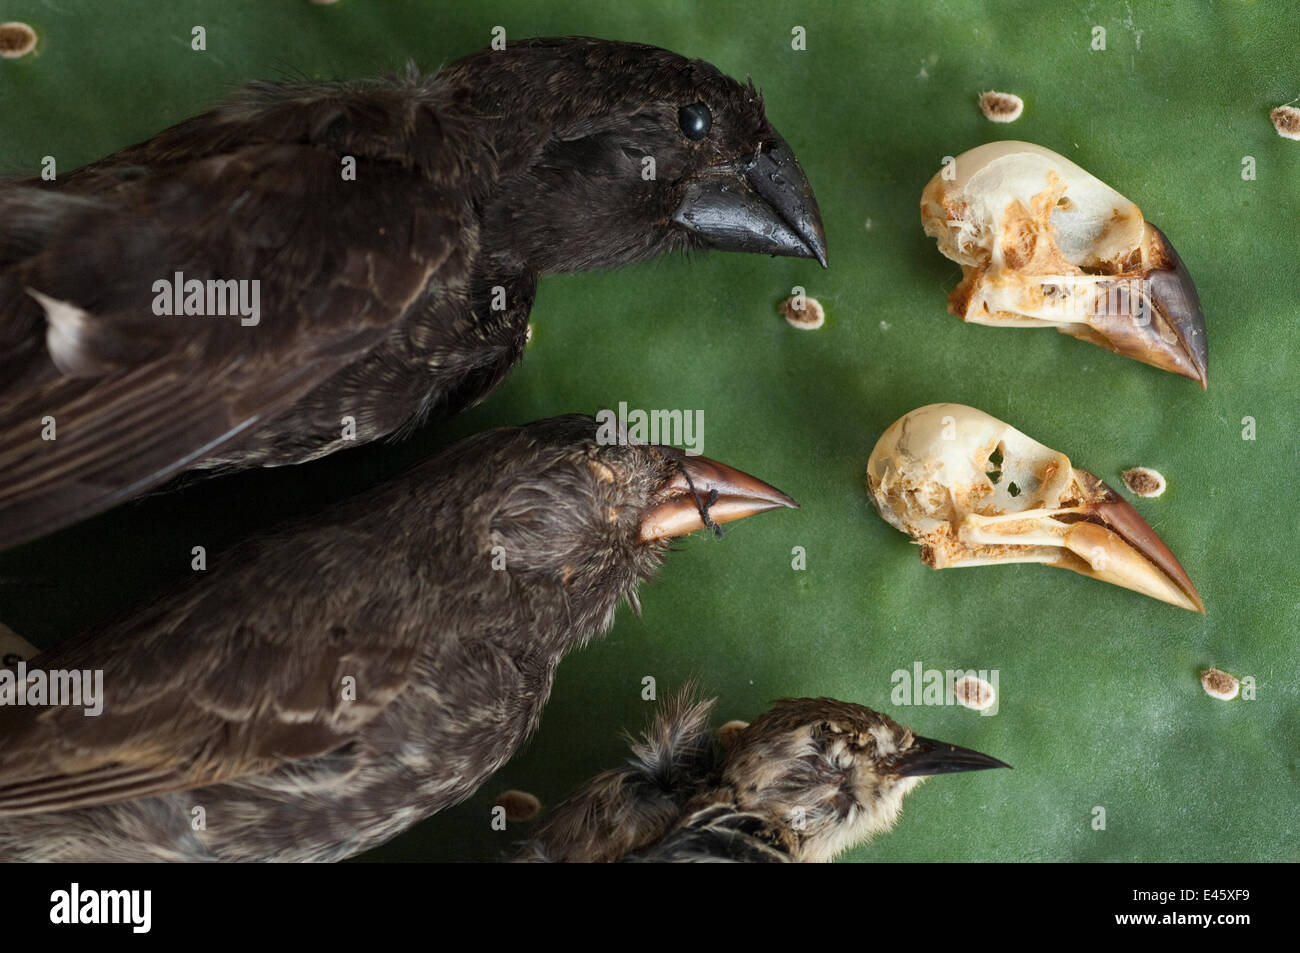 Finch specimens (Emberizidae) at the Charles Darwin Research Station, Puerto Ayora, Santa Cruz Island, Galapagos - Stock Image